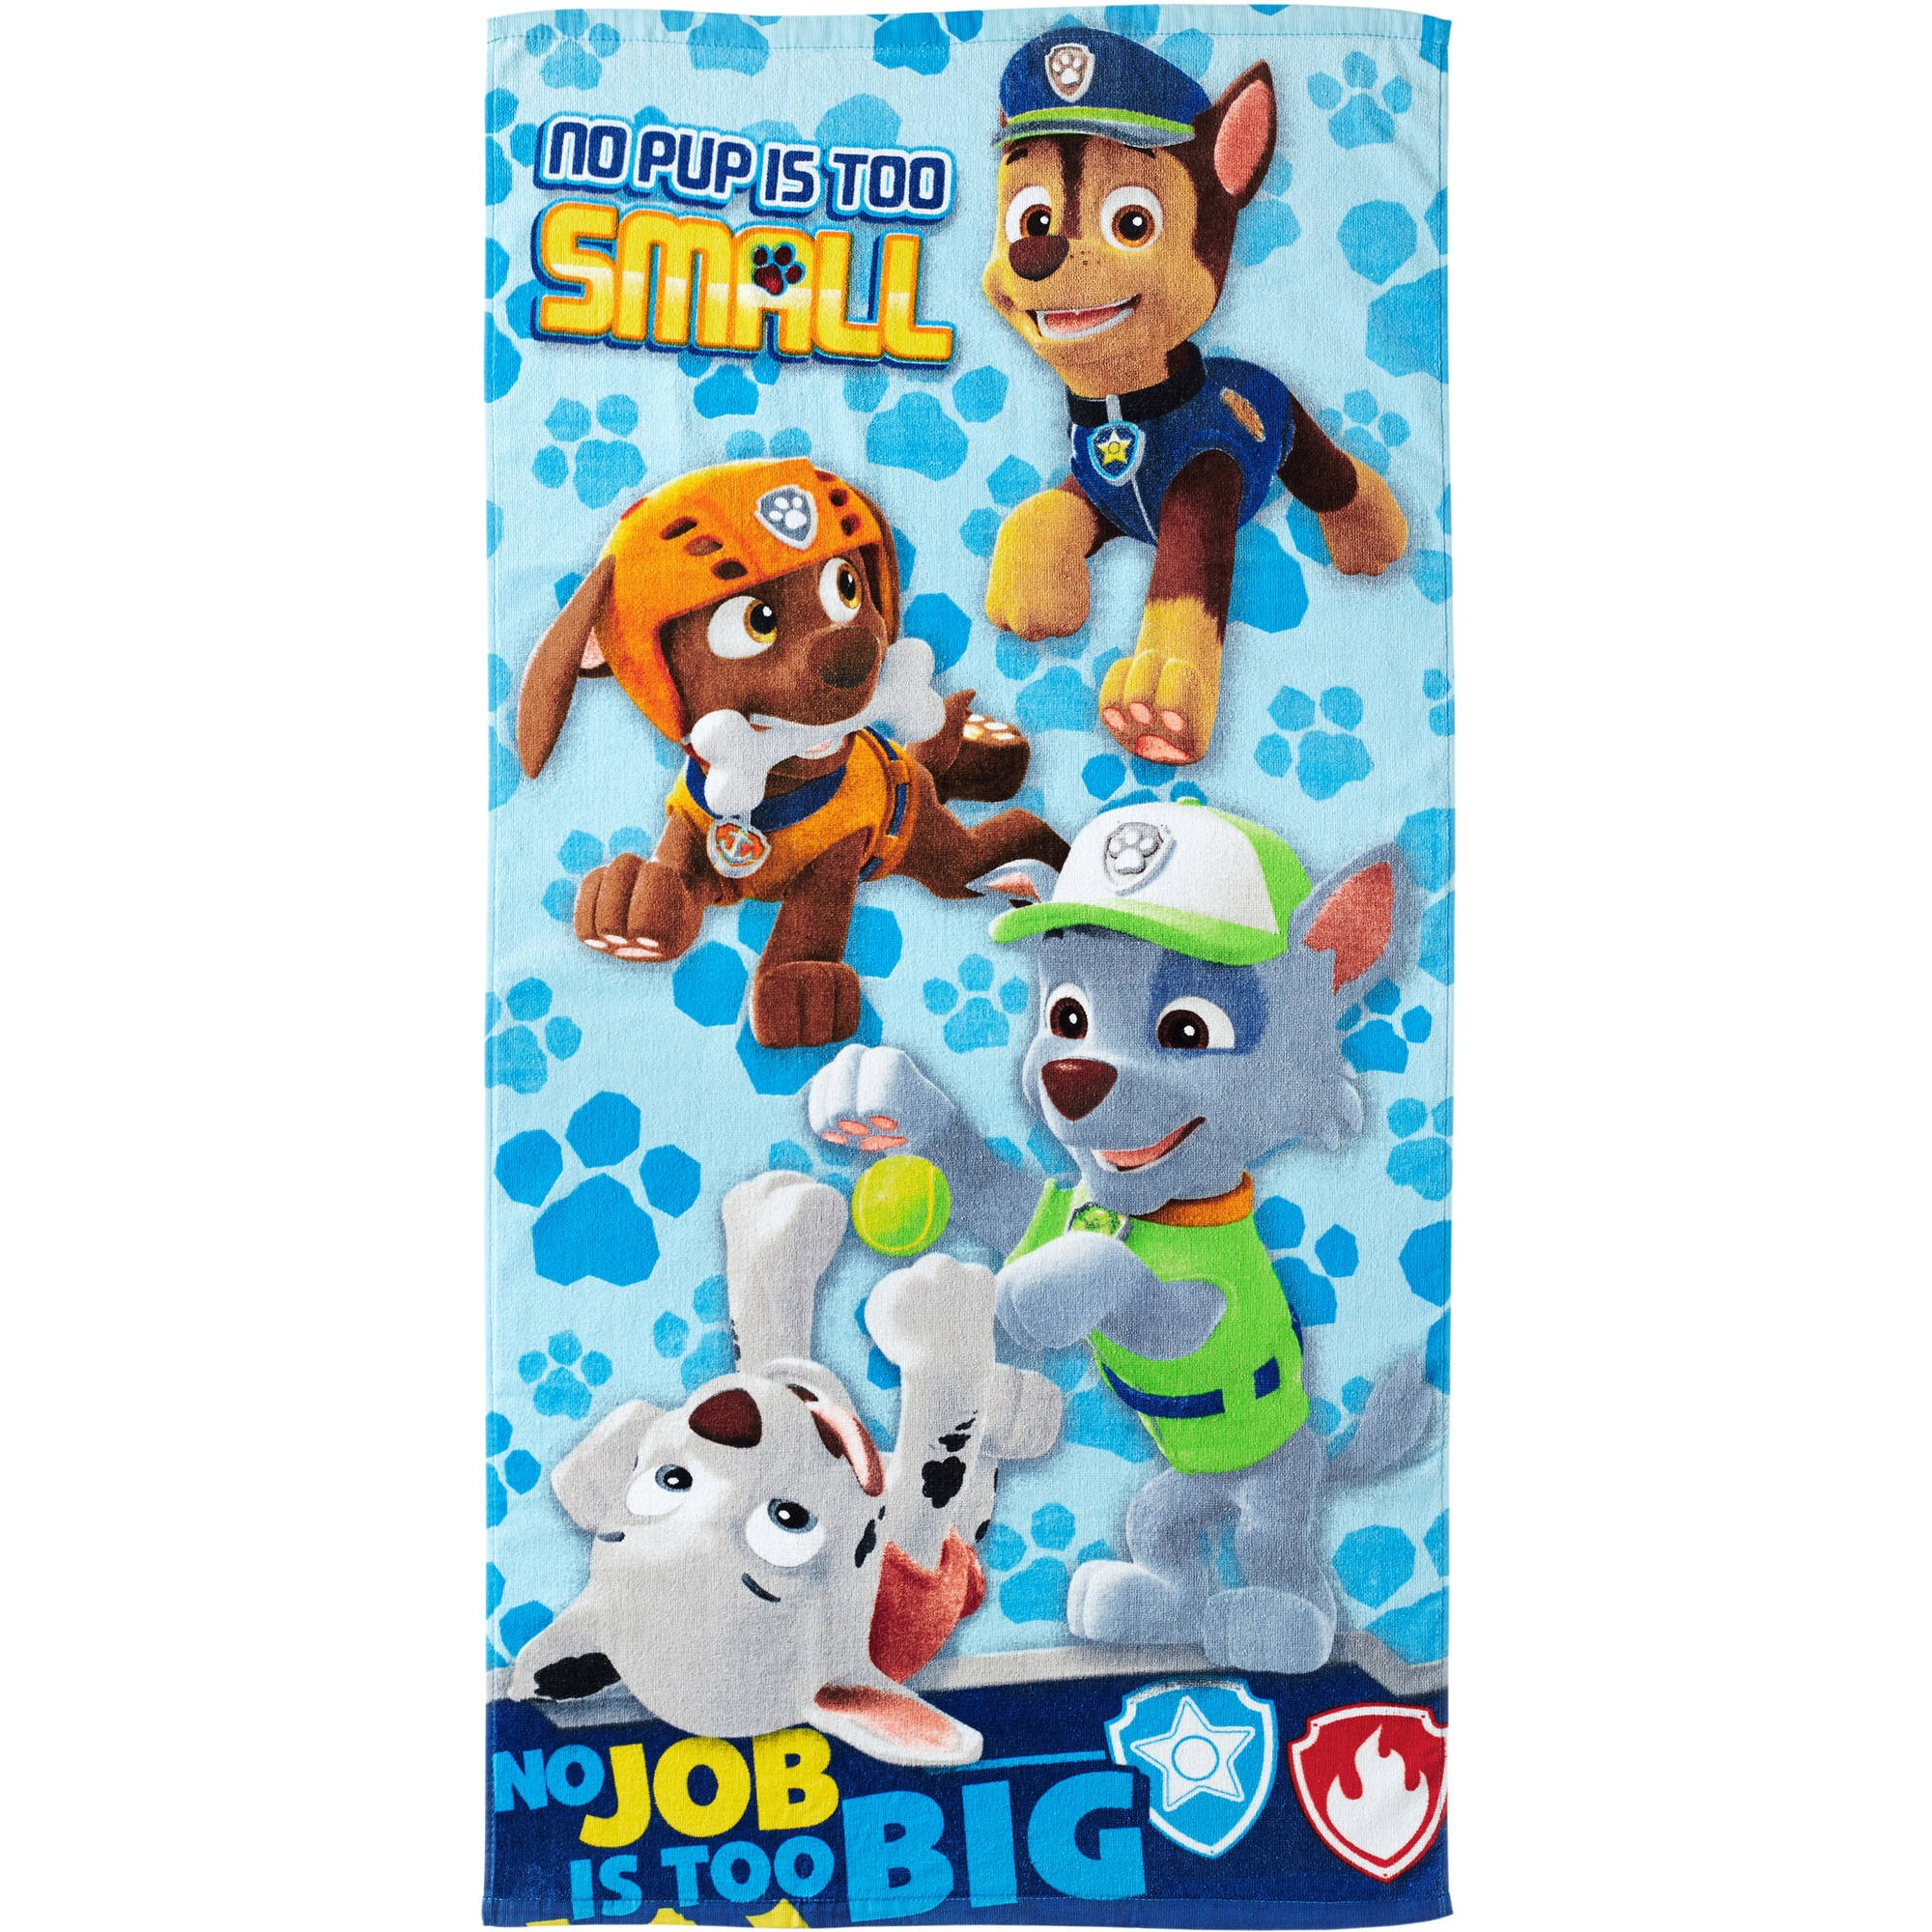 Nickelodeon Paw Patrol Rescue Crew Bath Towel